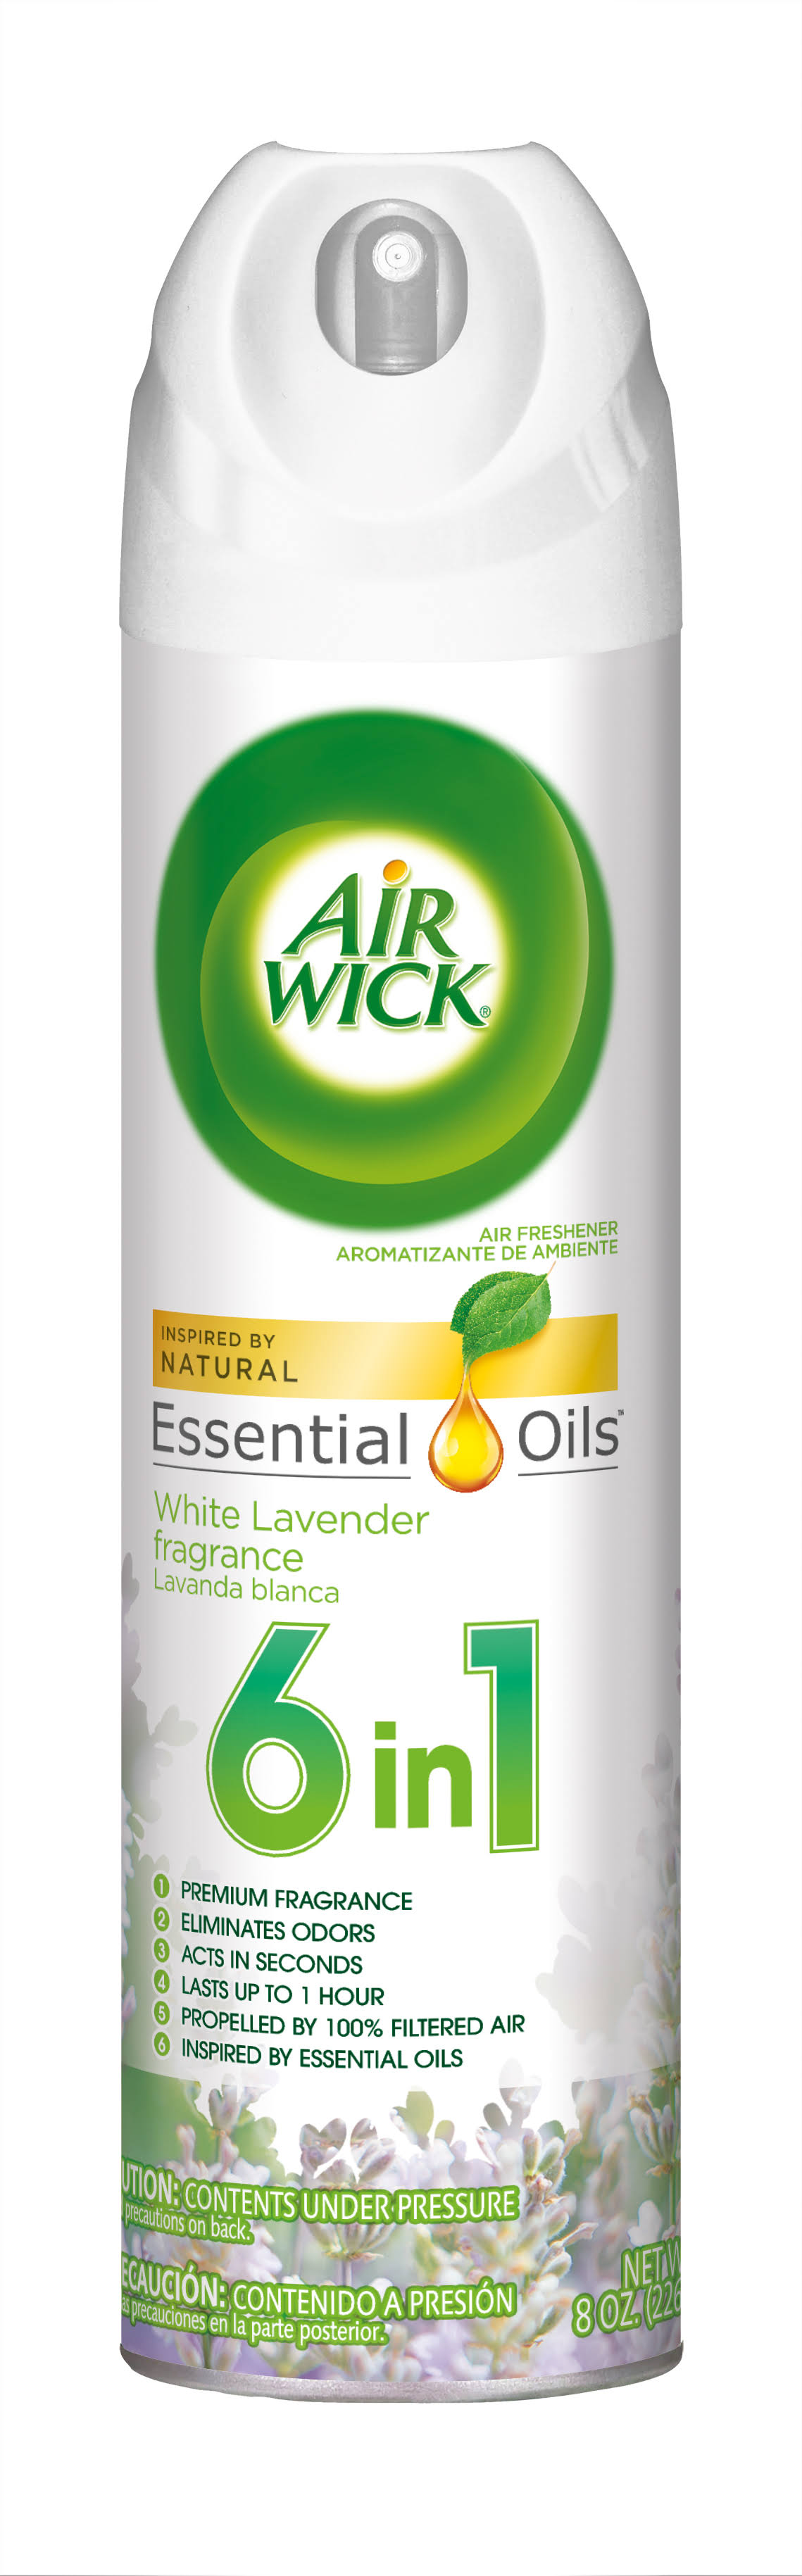 Air Wick Familiar Favorites Air Freshener, Snuggle, White Lavender Fragrance - 8 oz